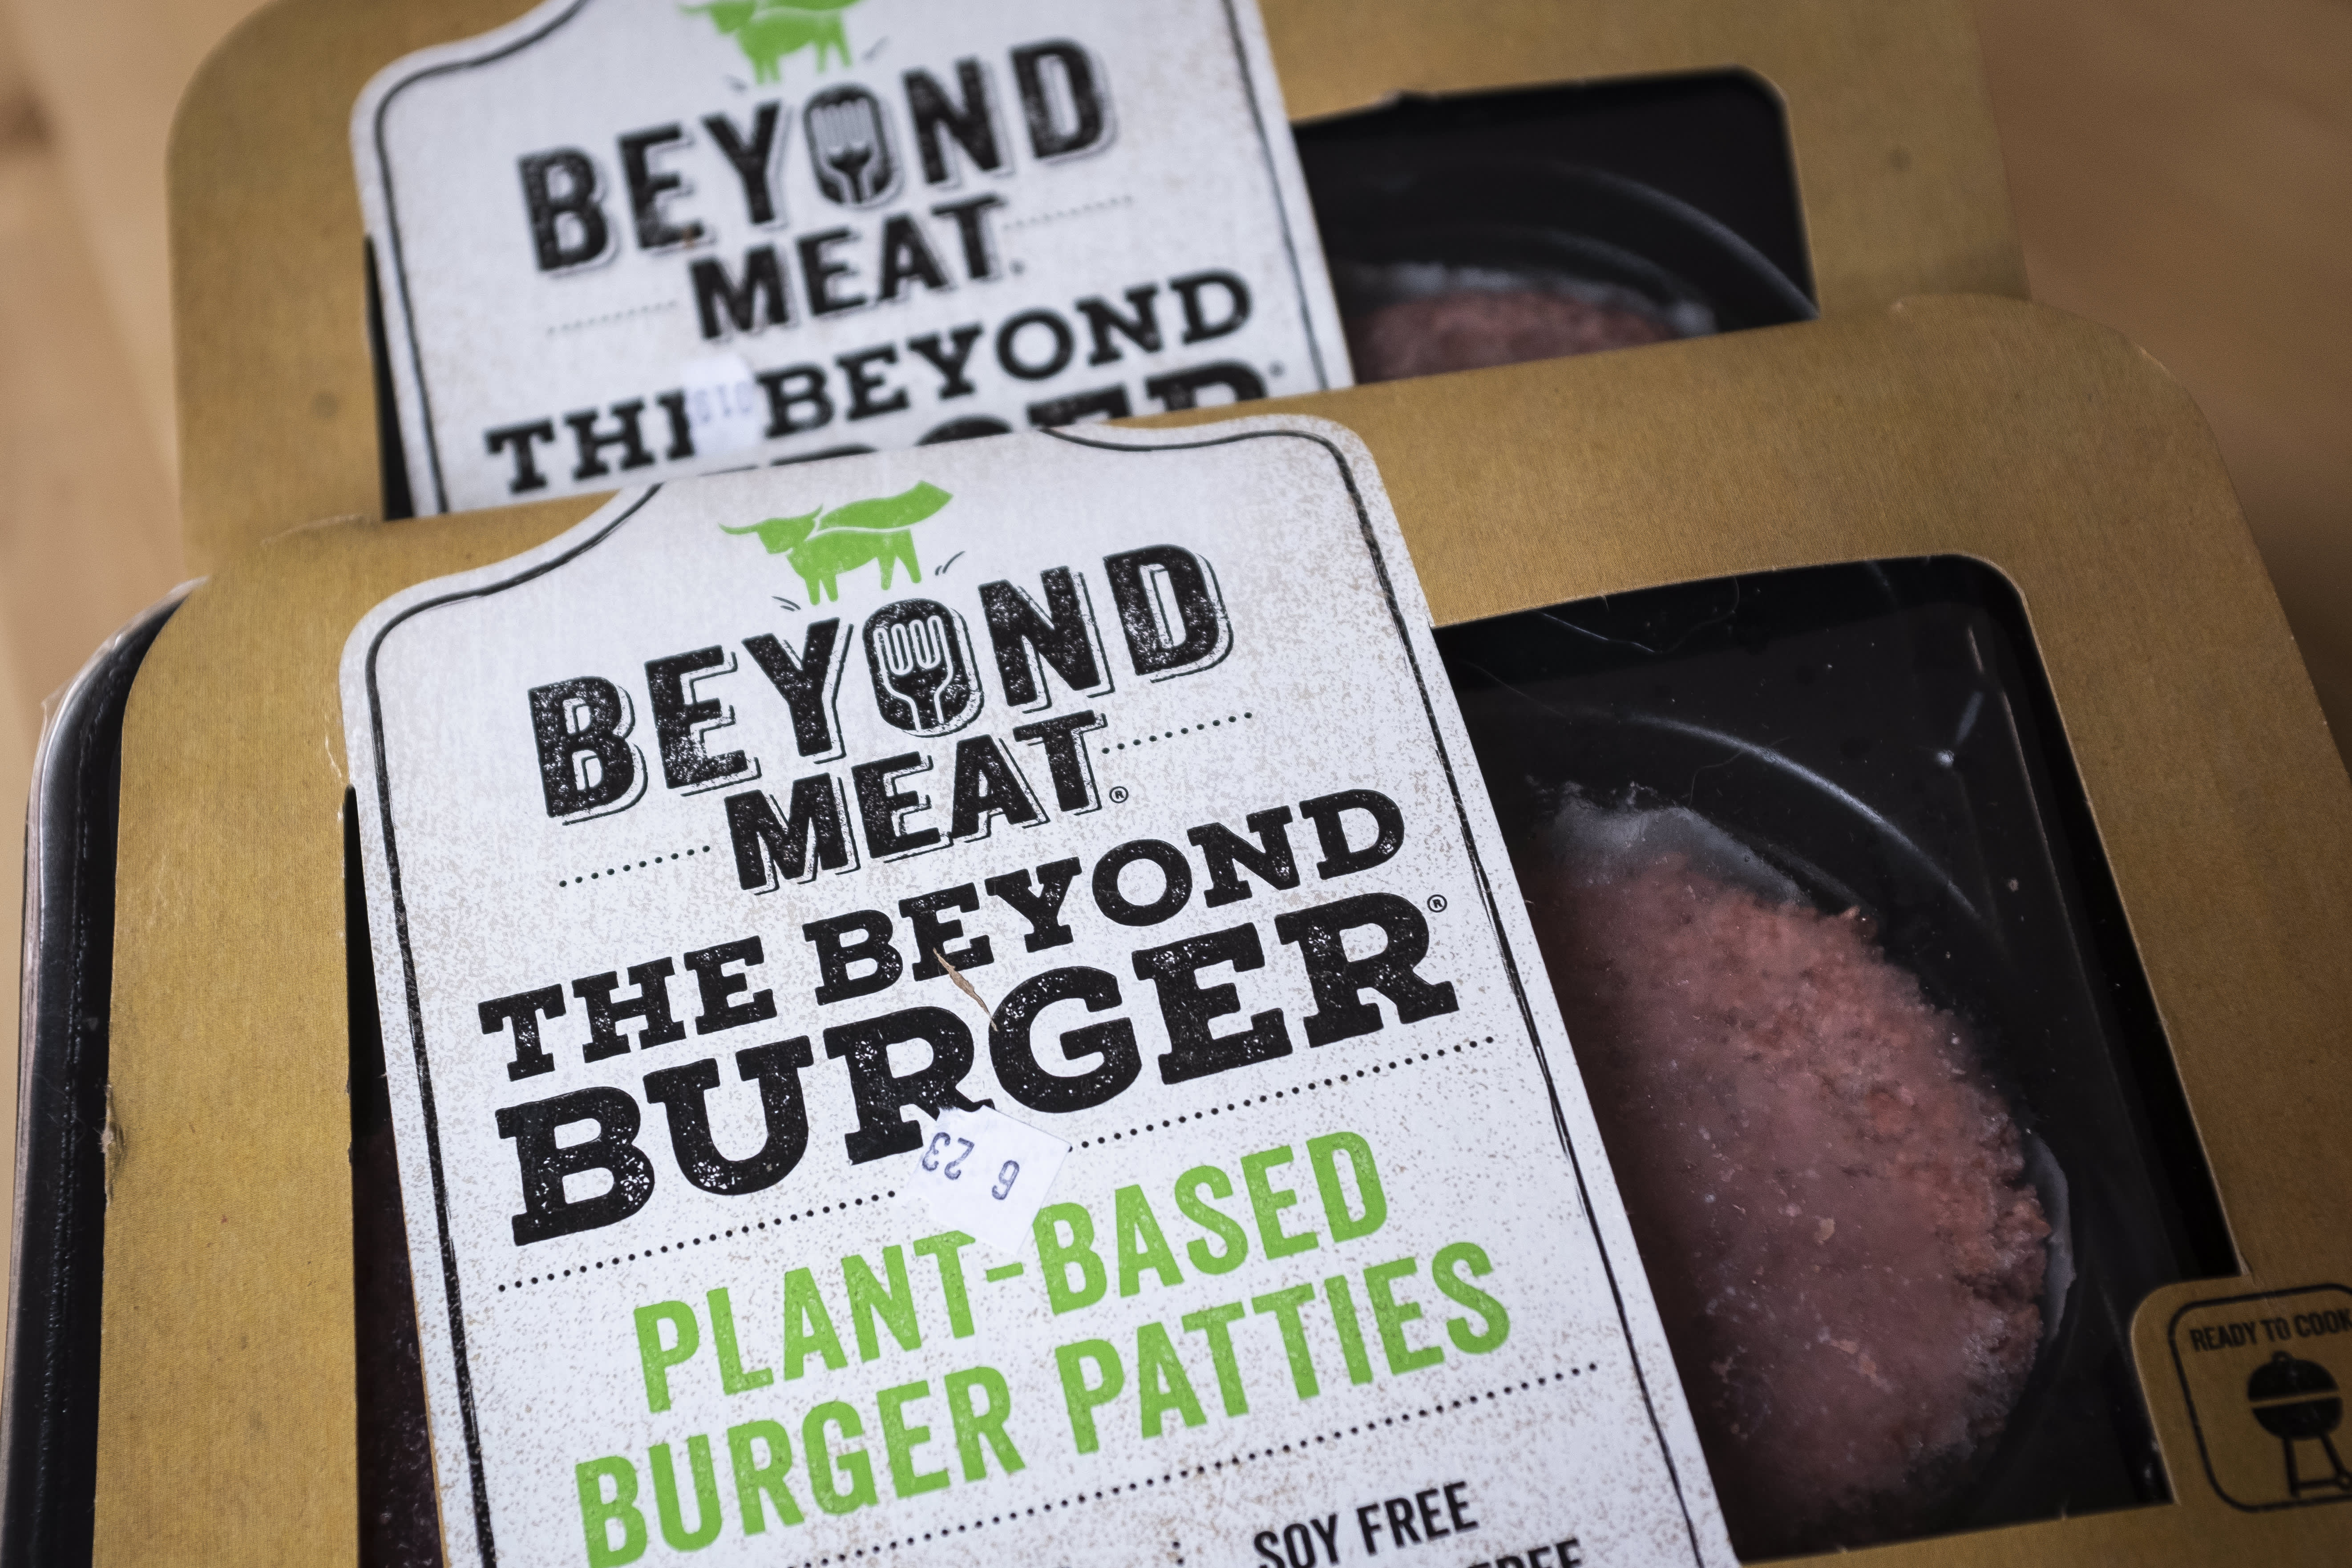 Barclays initiates coverage of Beyond Meat, saying it's 'not your typical meat company'